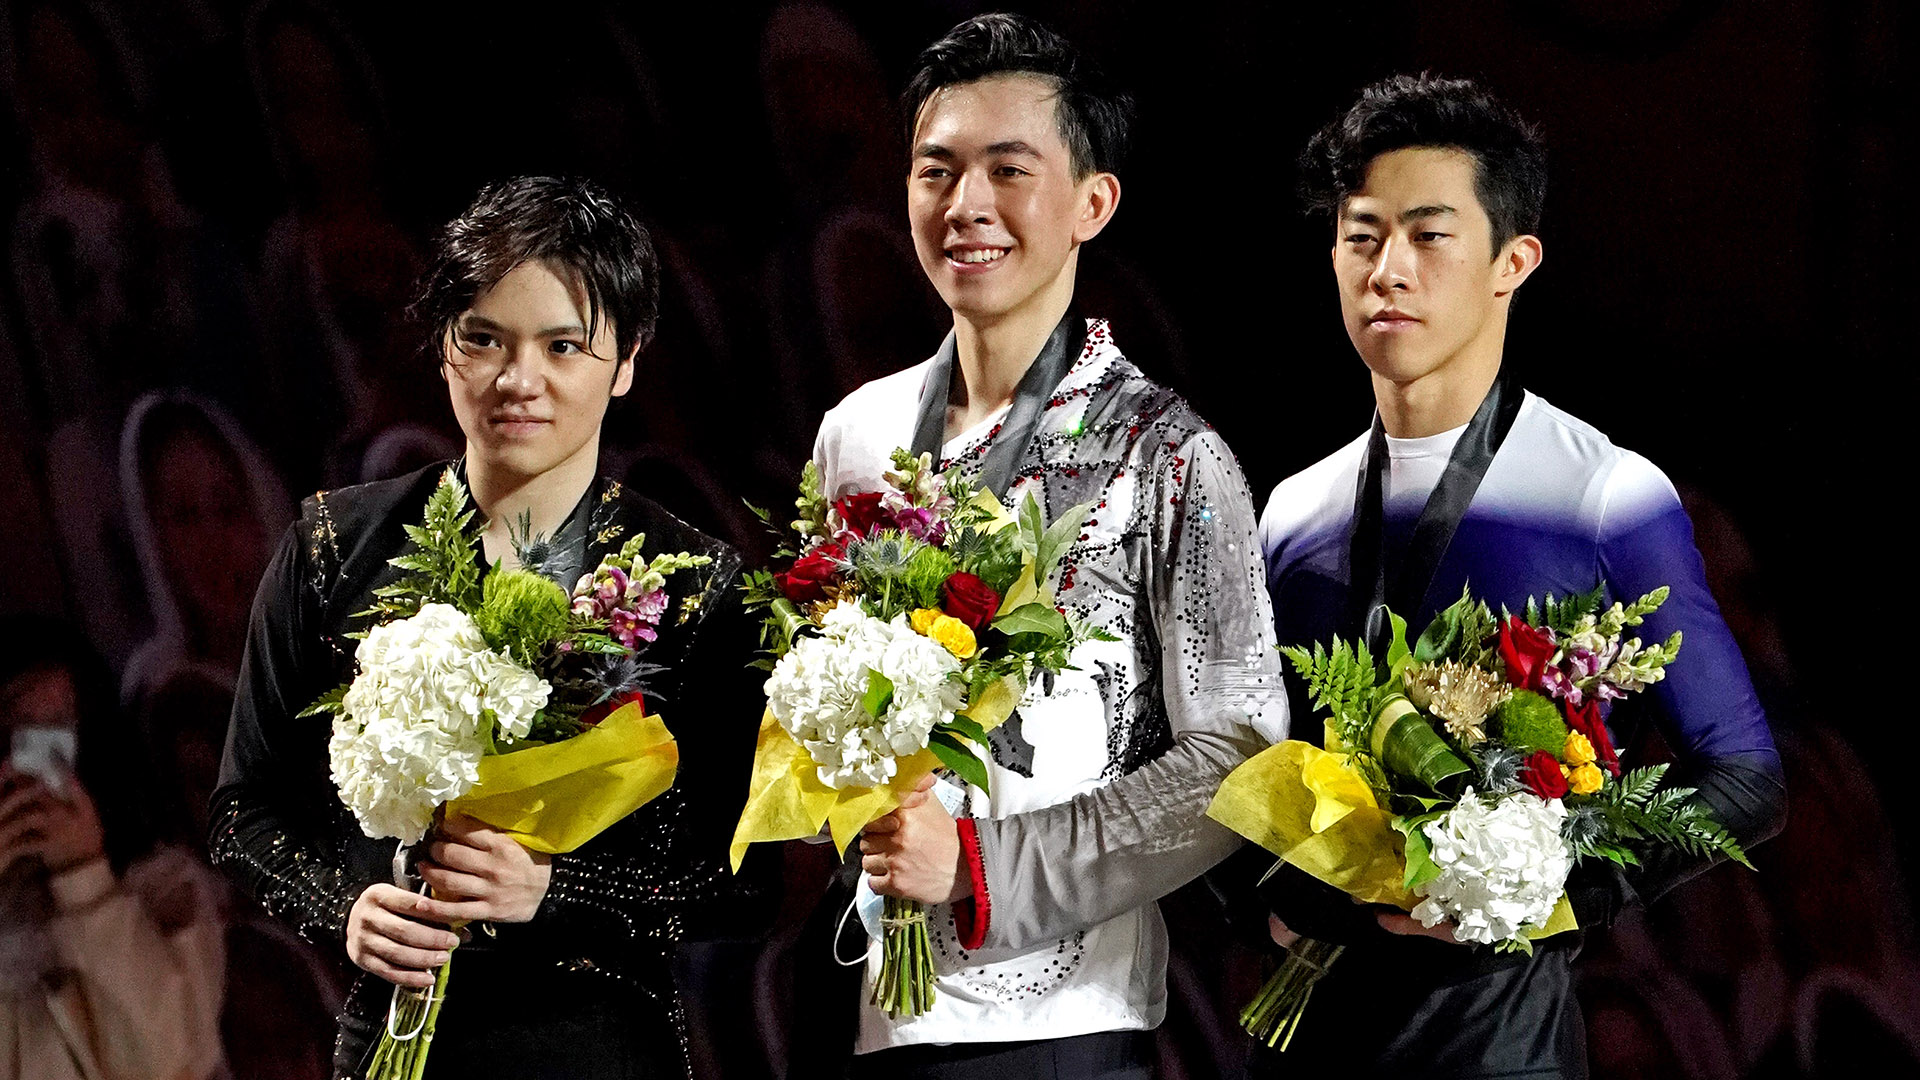 Vincent Zhou scored his first major senior title with a win at Skate America, while Nathan Chen...